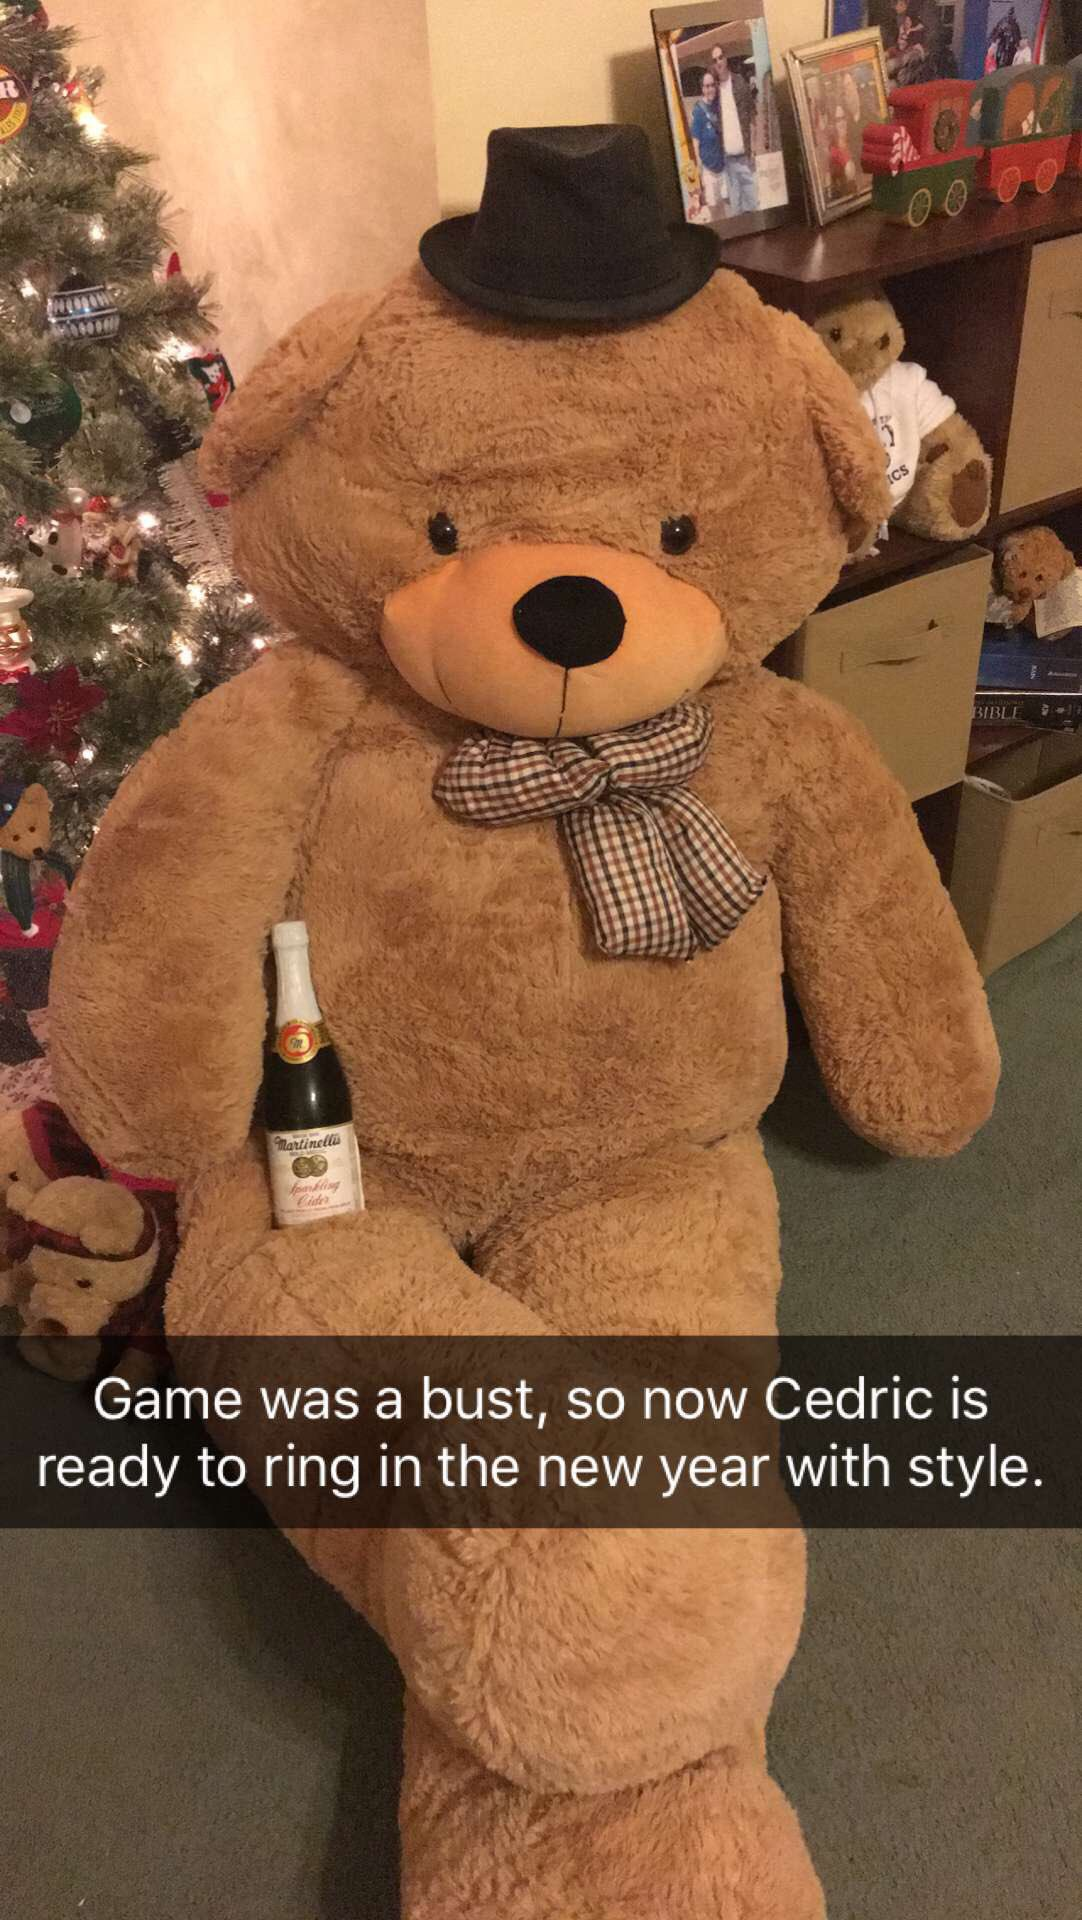 Tessa from SC. I'm on my way to bed, so won't be around for the rest, but my favorite bear is Cedric the Giant Teddy Bear. #weirded https://t.co/DpFar23m8g